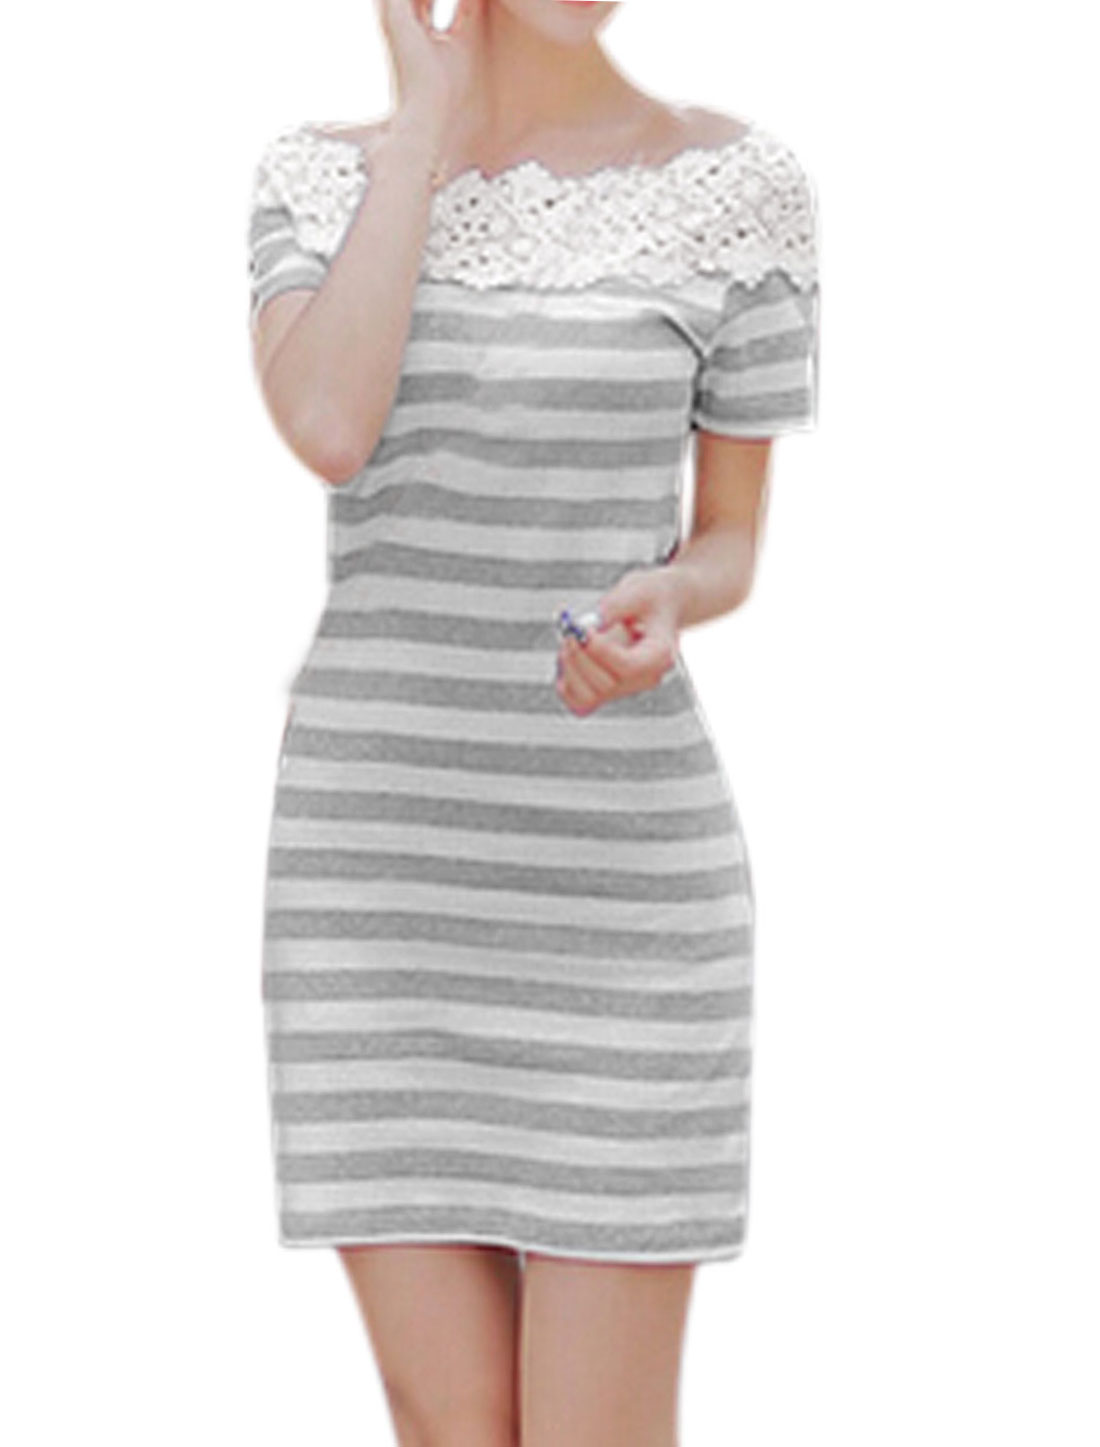 Women Off Shoulder Stripes Crochet Flower Spliced Sheath Dress Gray White M